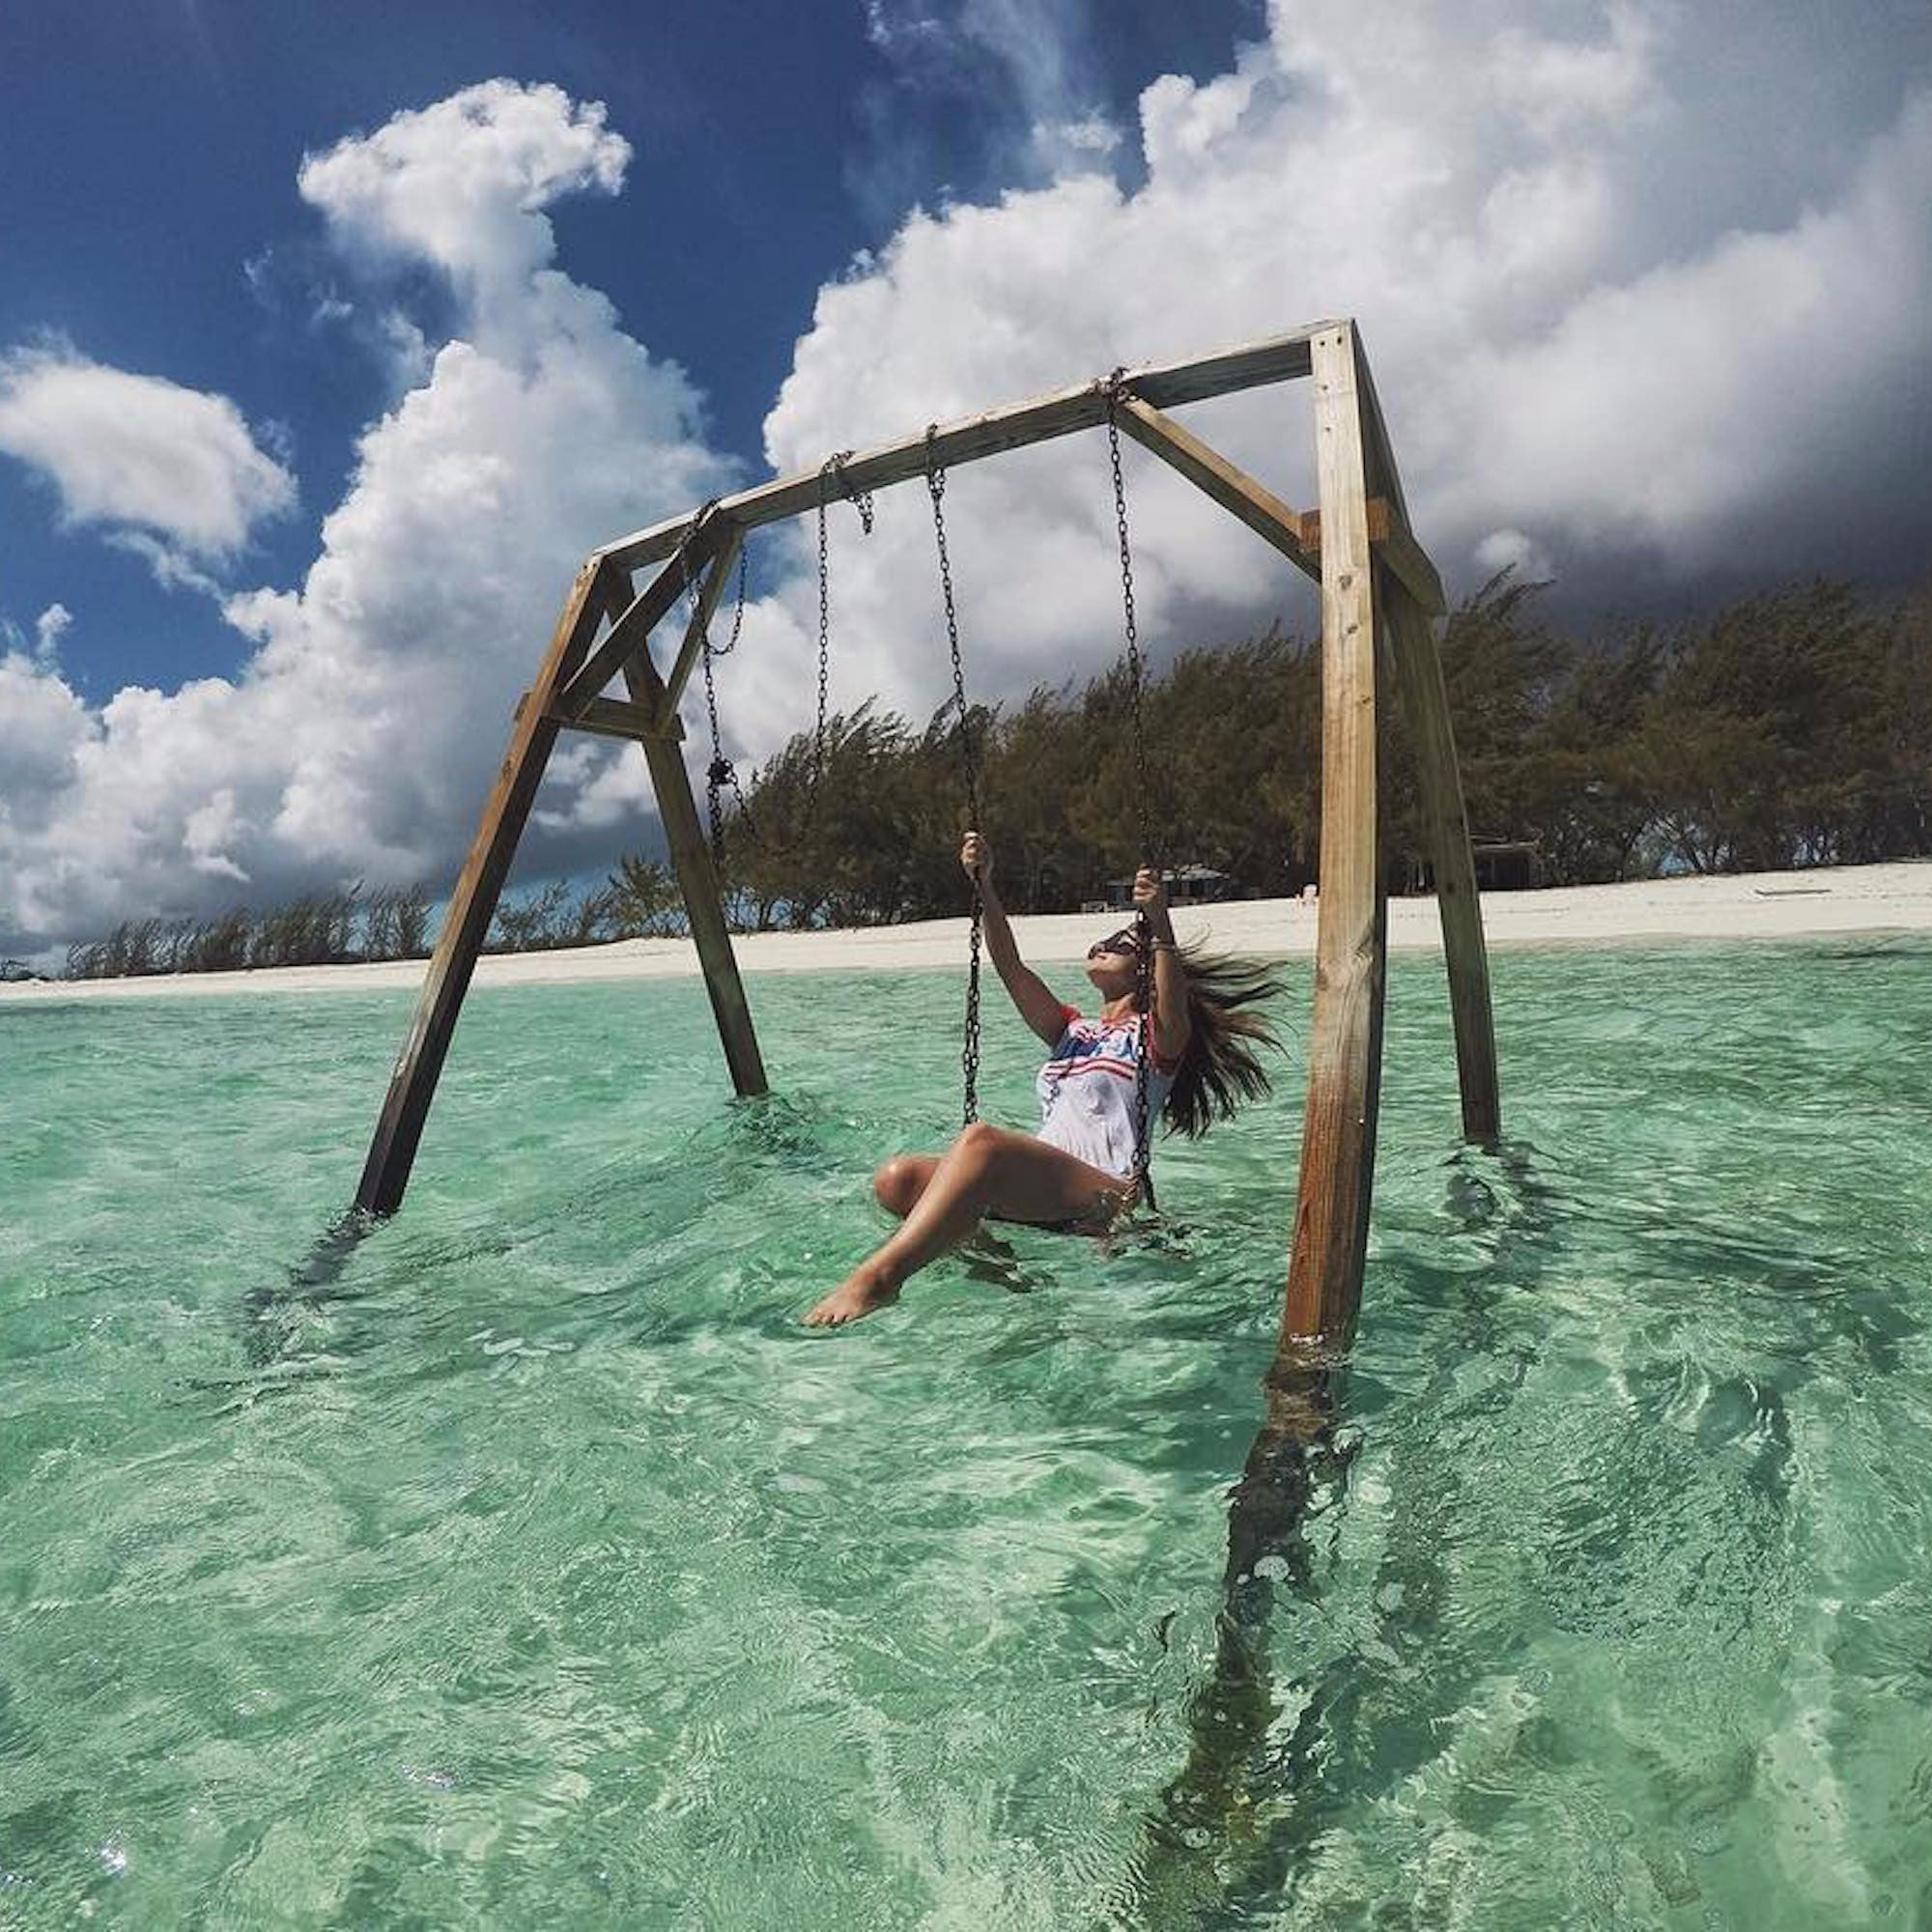 Ocean Swing Set In The Bahamas POPSUGAR Smart Living - Bahamas